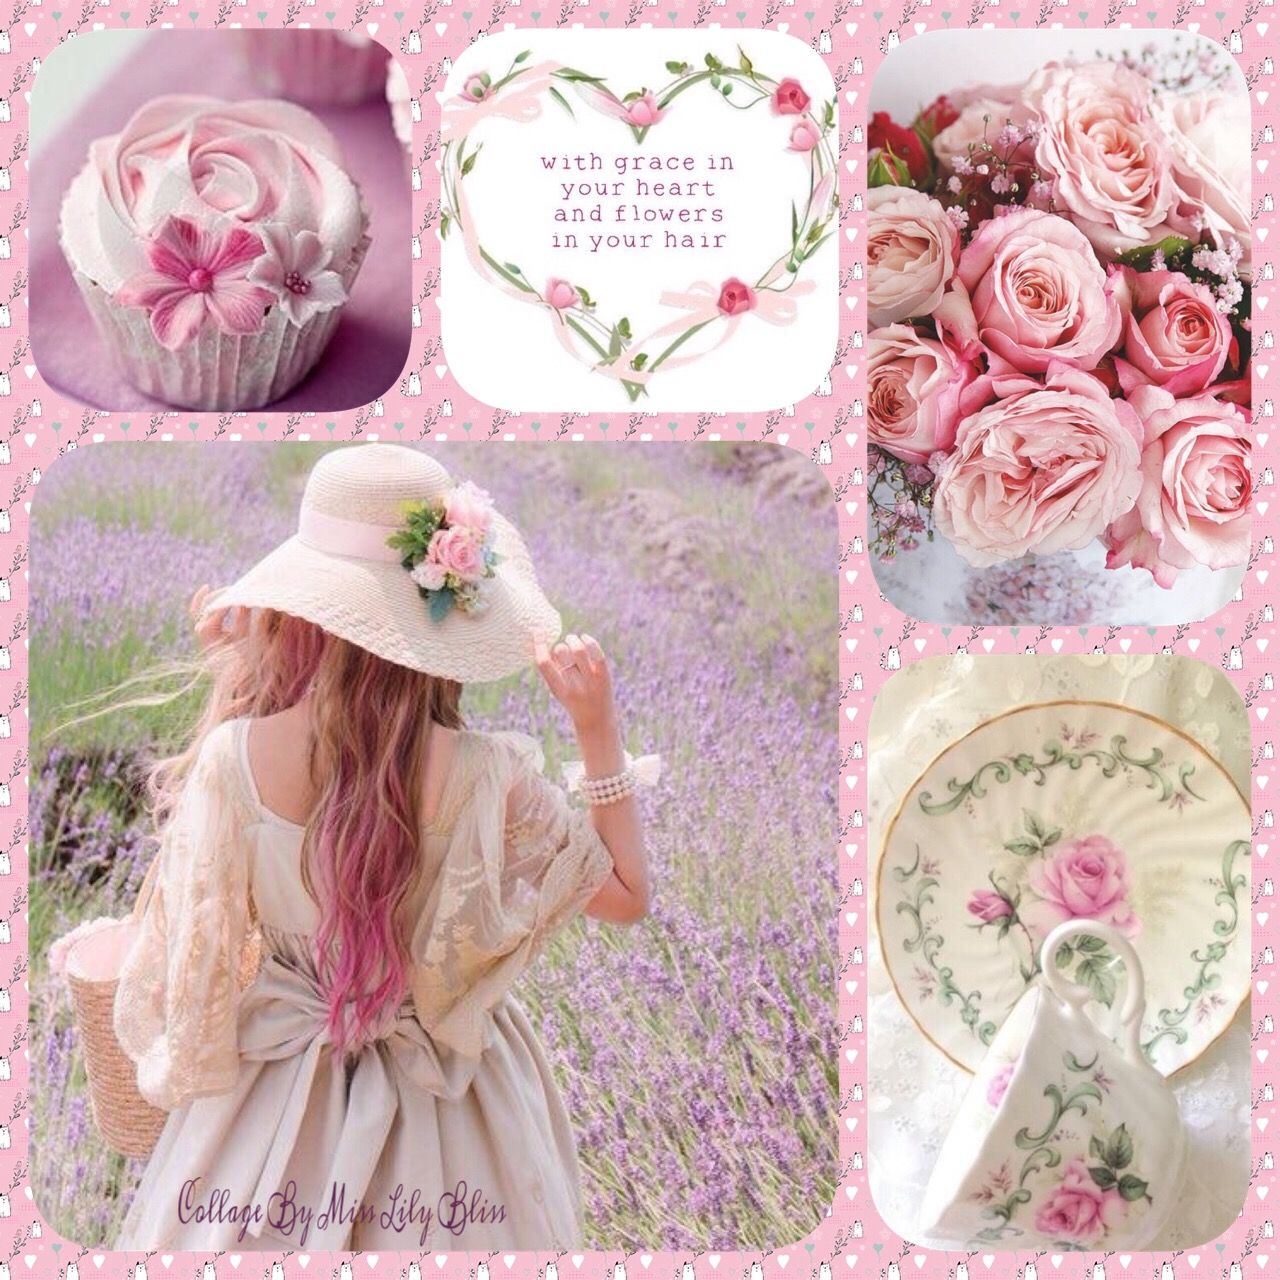 Collage By Miss Lily Bliss Pink, Tickled pink, Pretty in